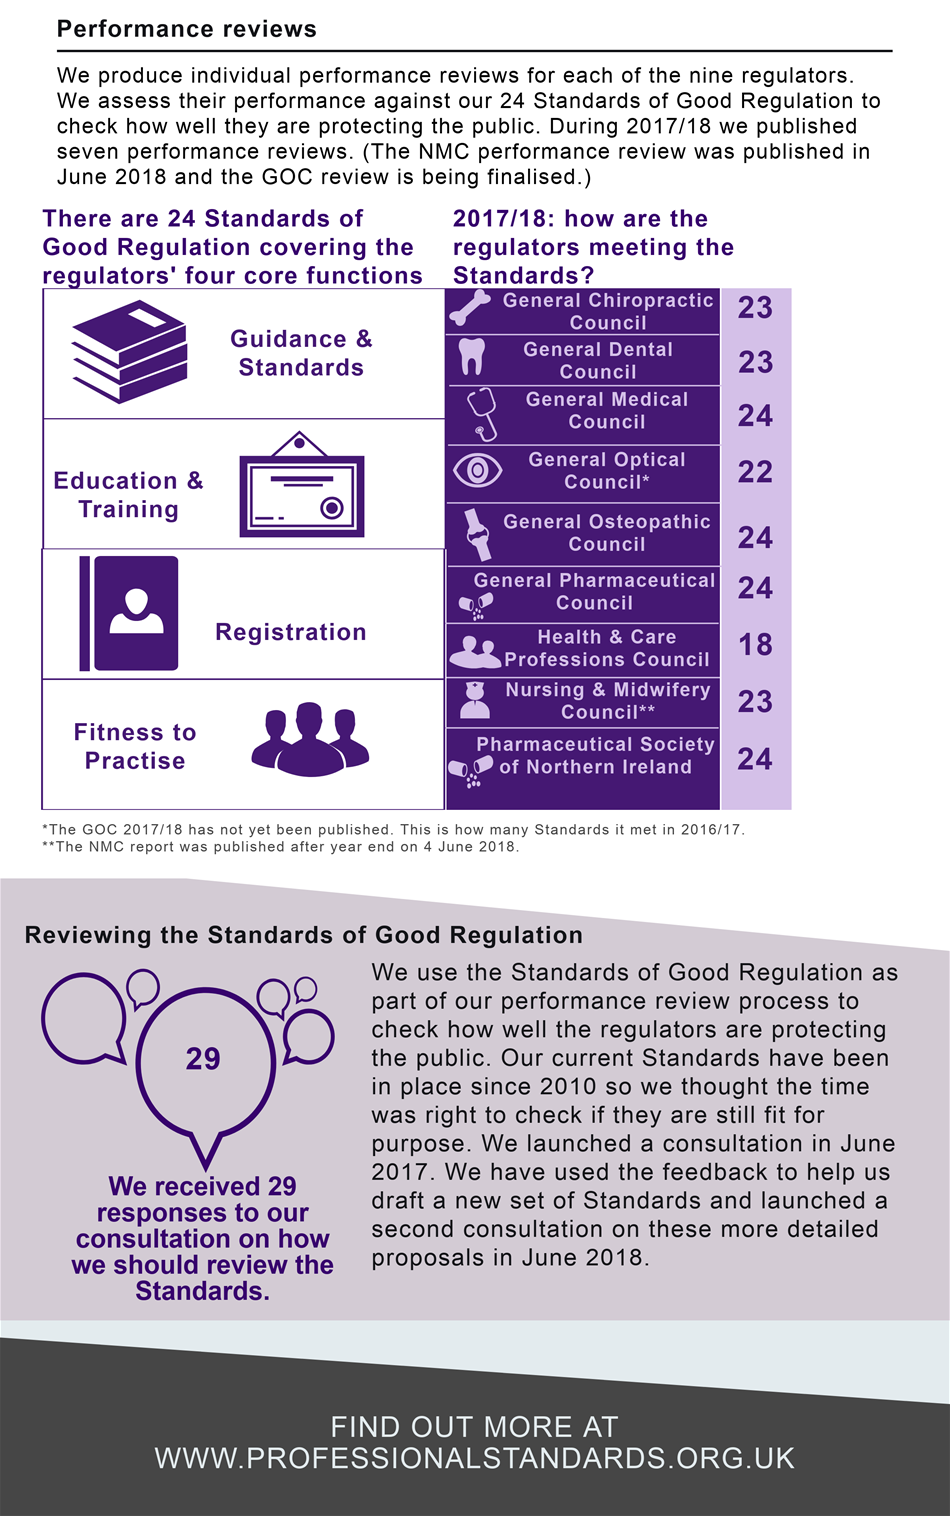 Reviewing the regulators - key stats 2017-18 - performance reviews